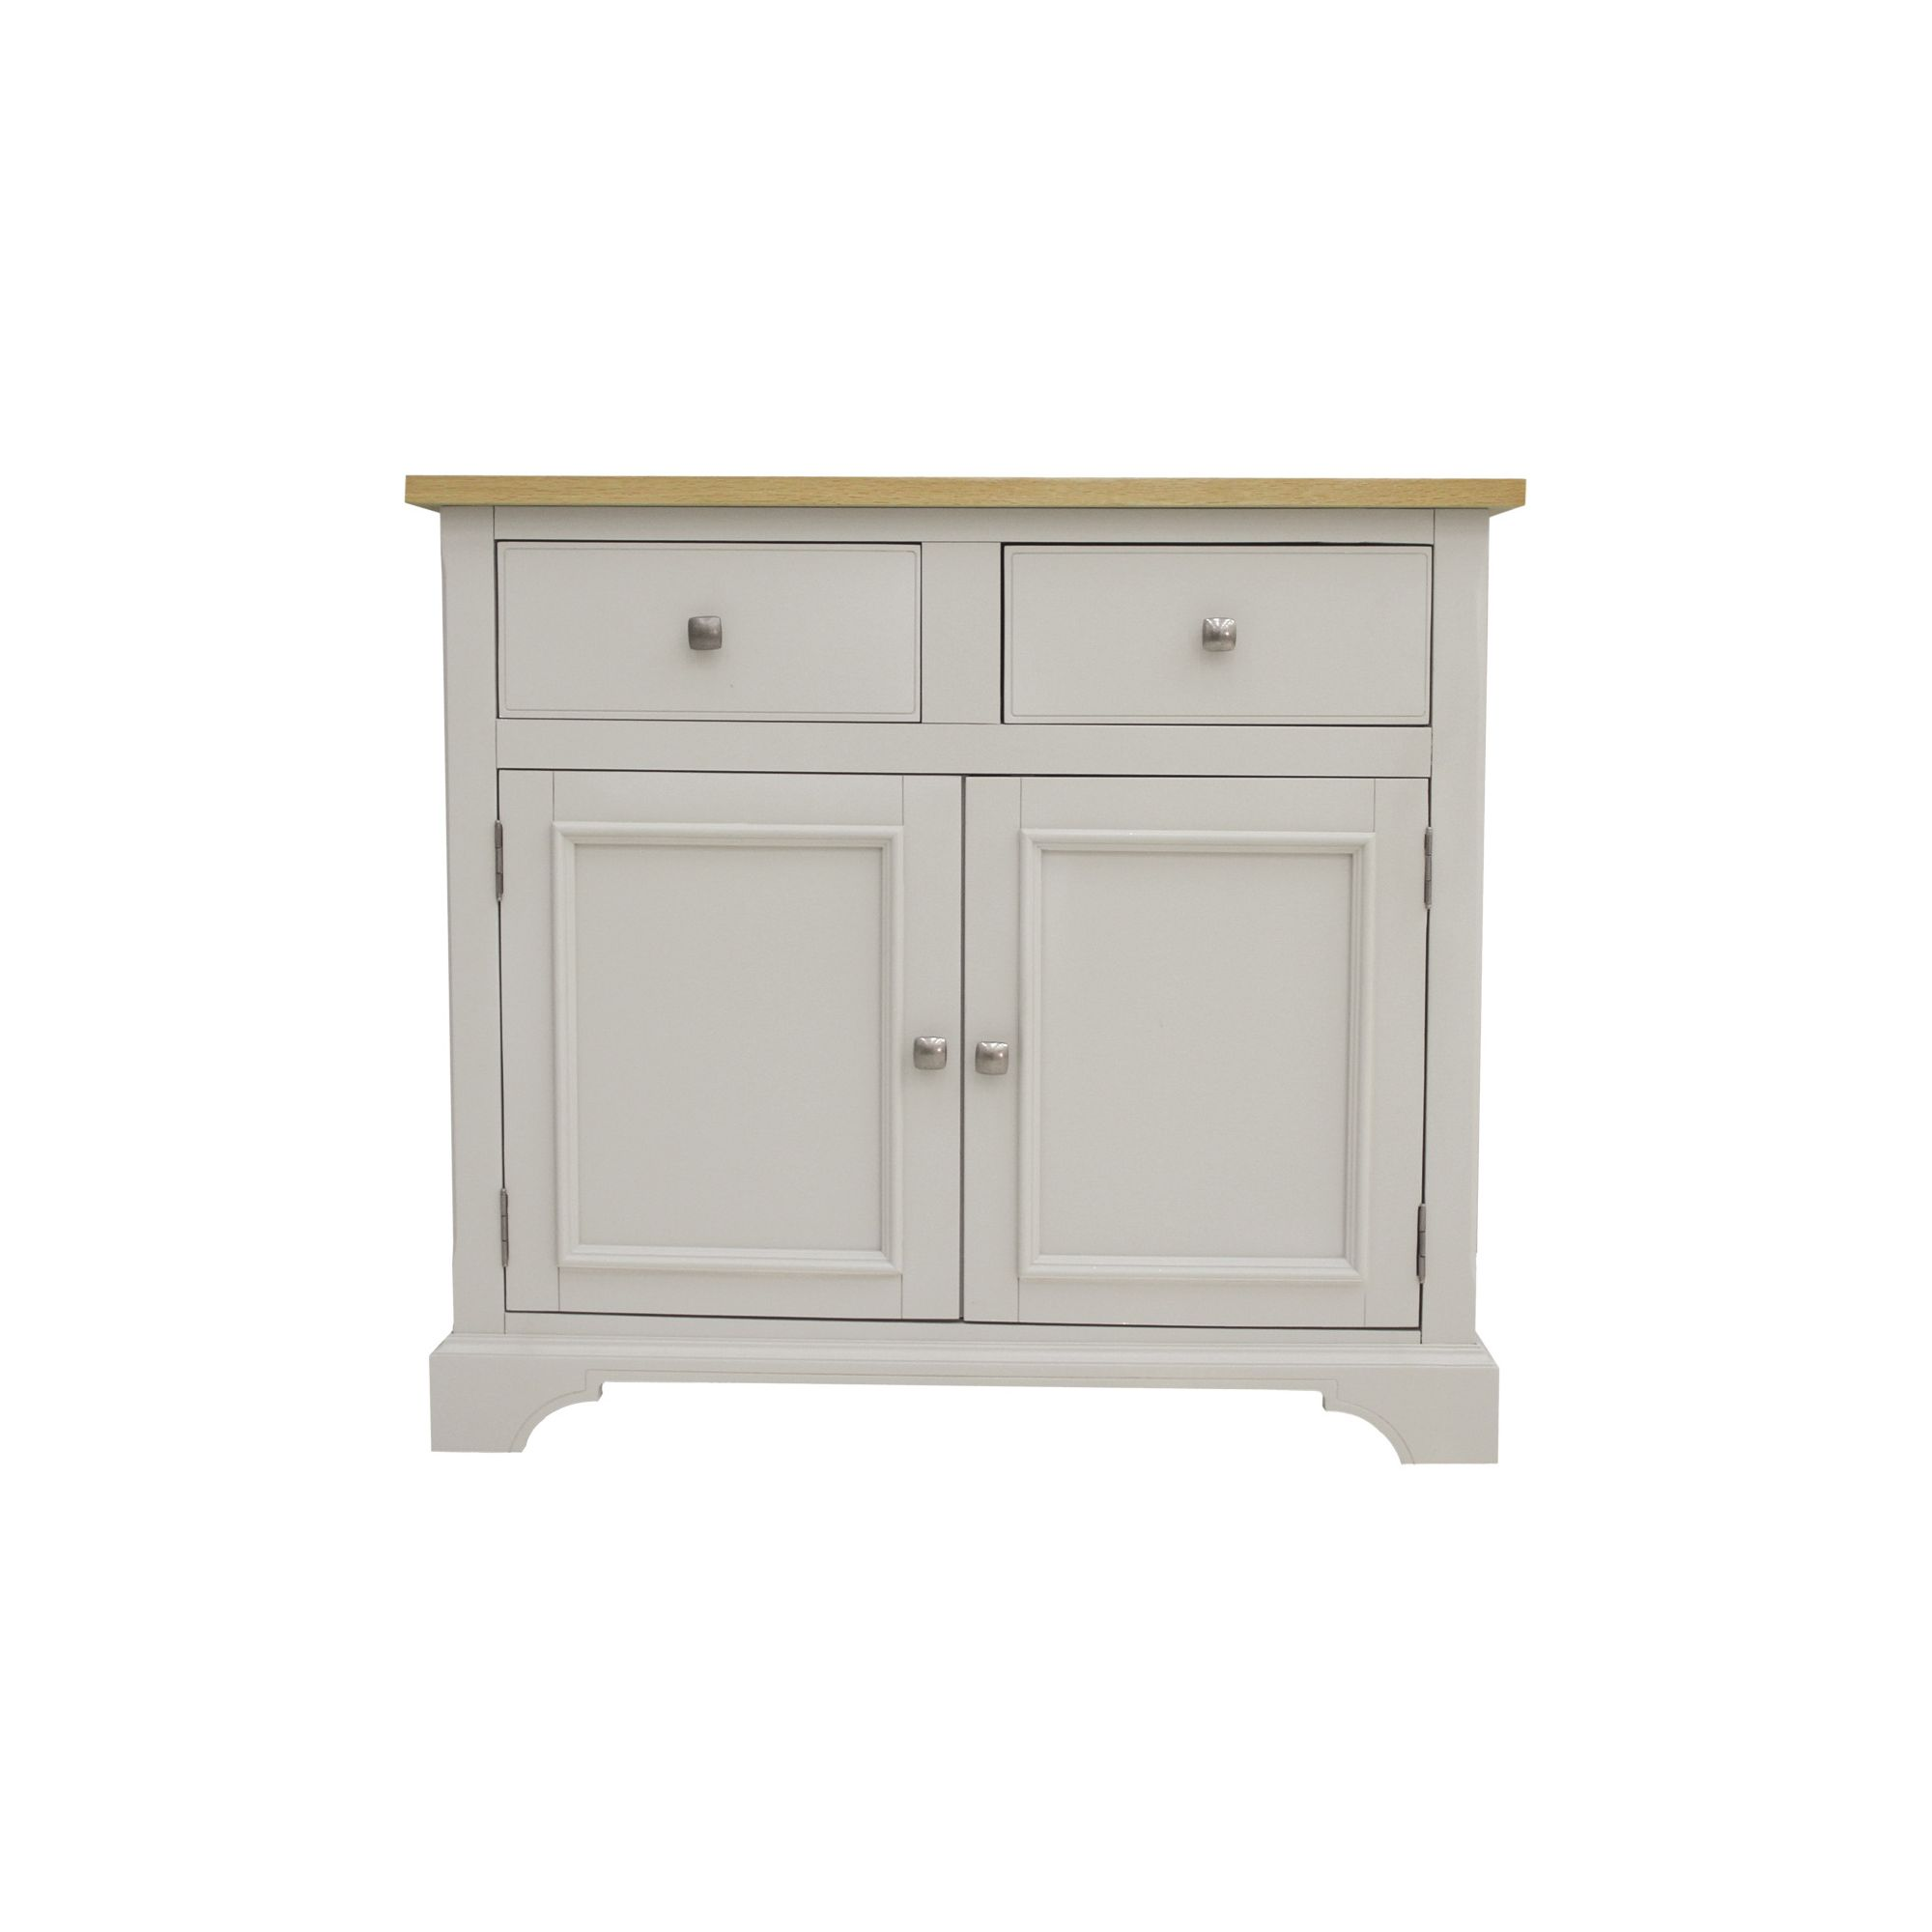 Thorndon Highgrove Dining 2 Door Sideboard at Tescos Direct